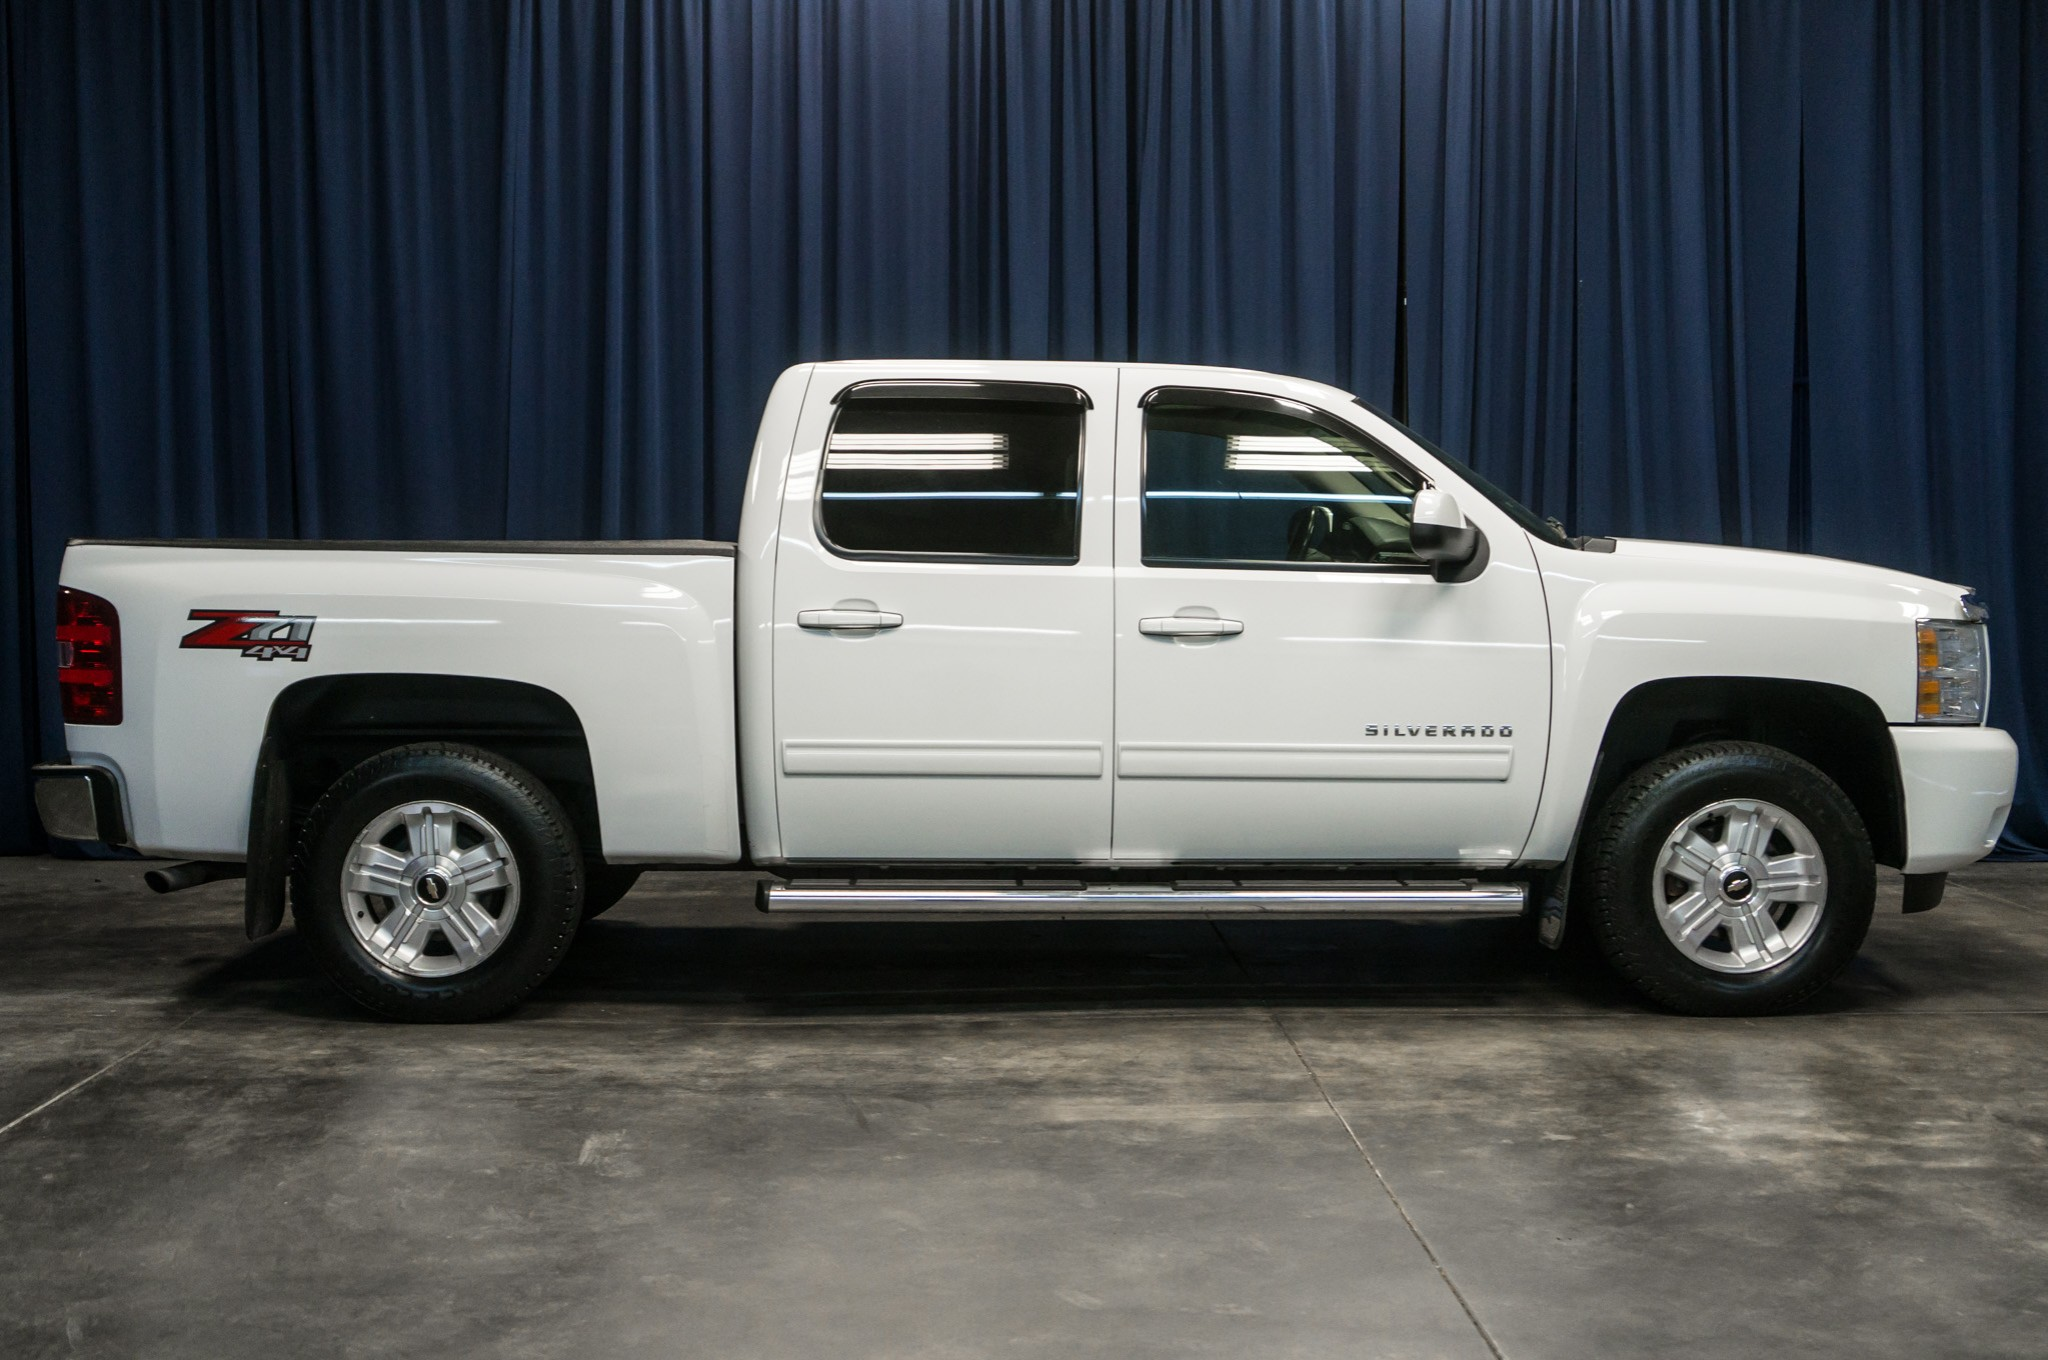 used 2010 chevrolet silverado 1500 ltz z71 4x4 truck for sale 41615. Black Bedroom Furniture Sets. Home Design Ideas